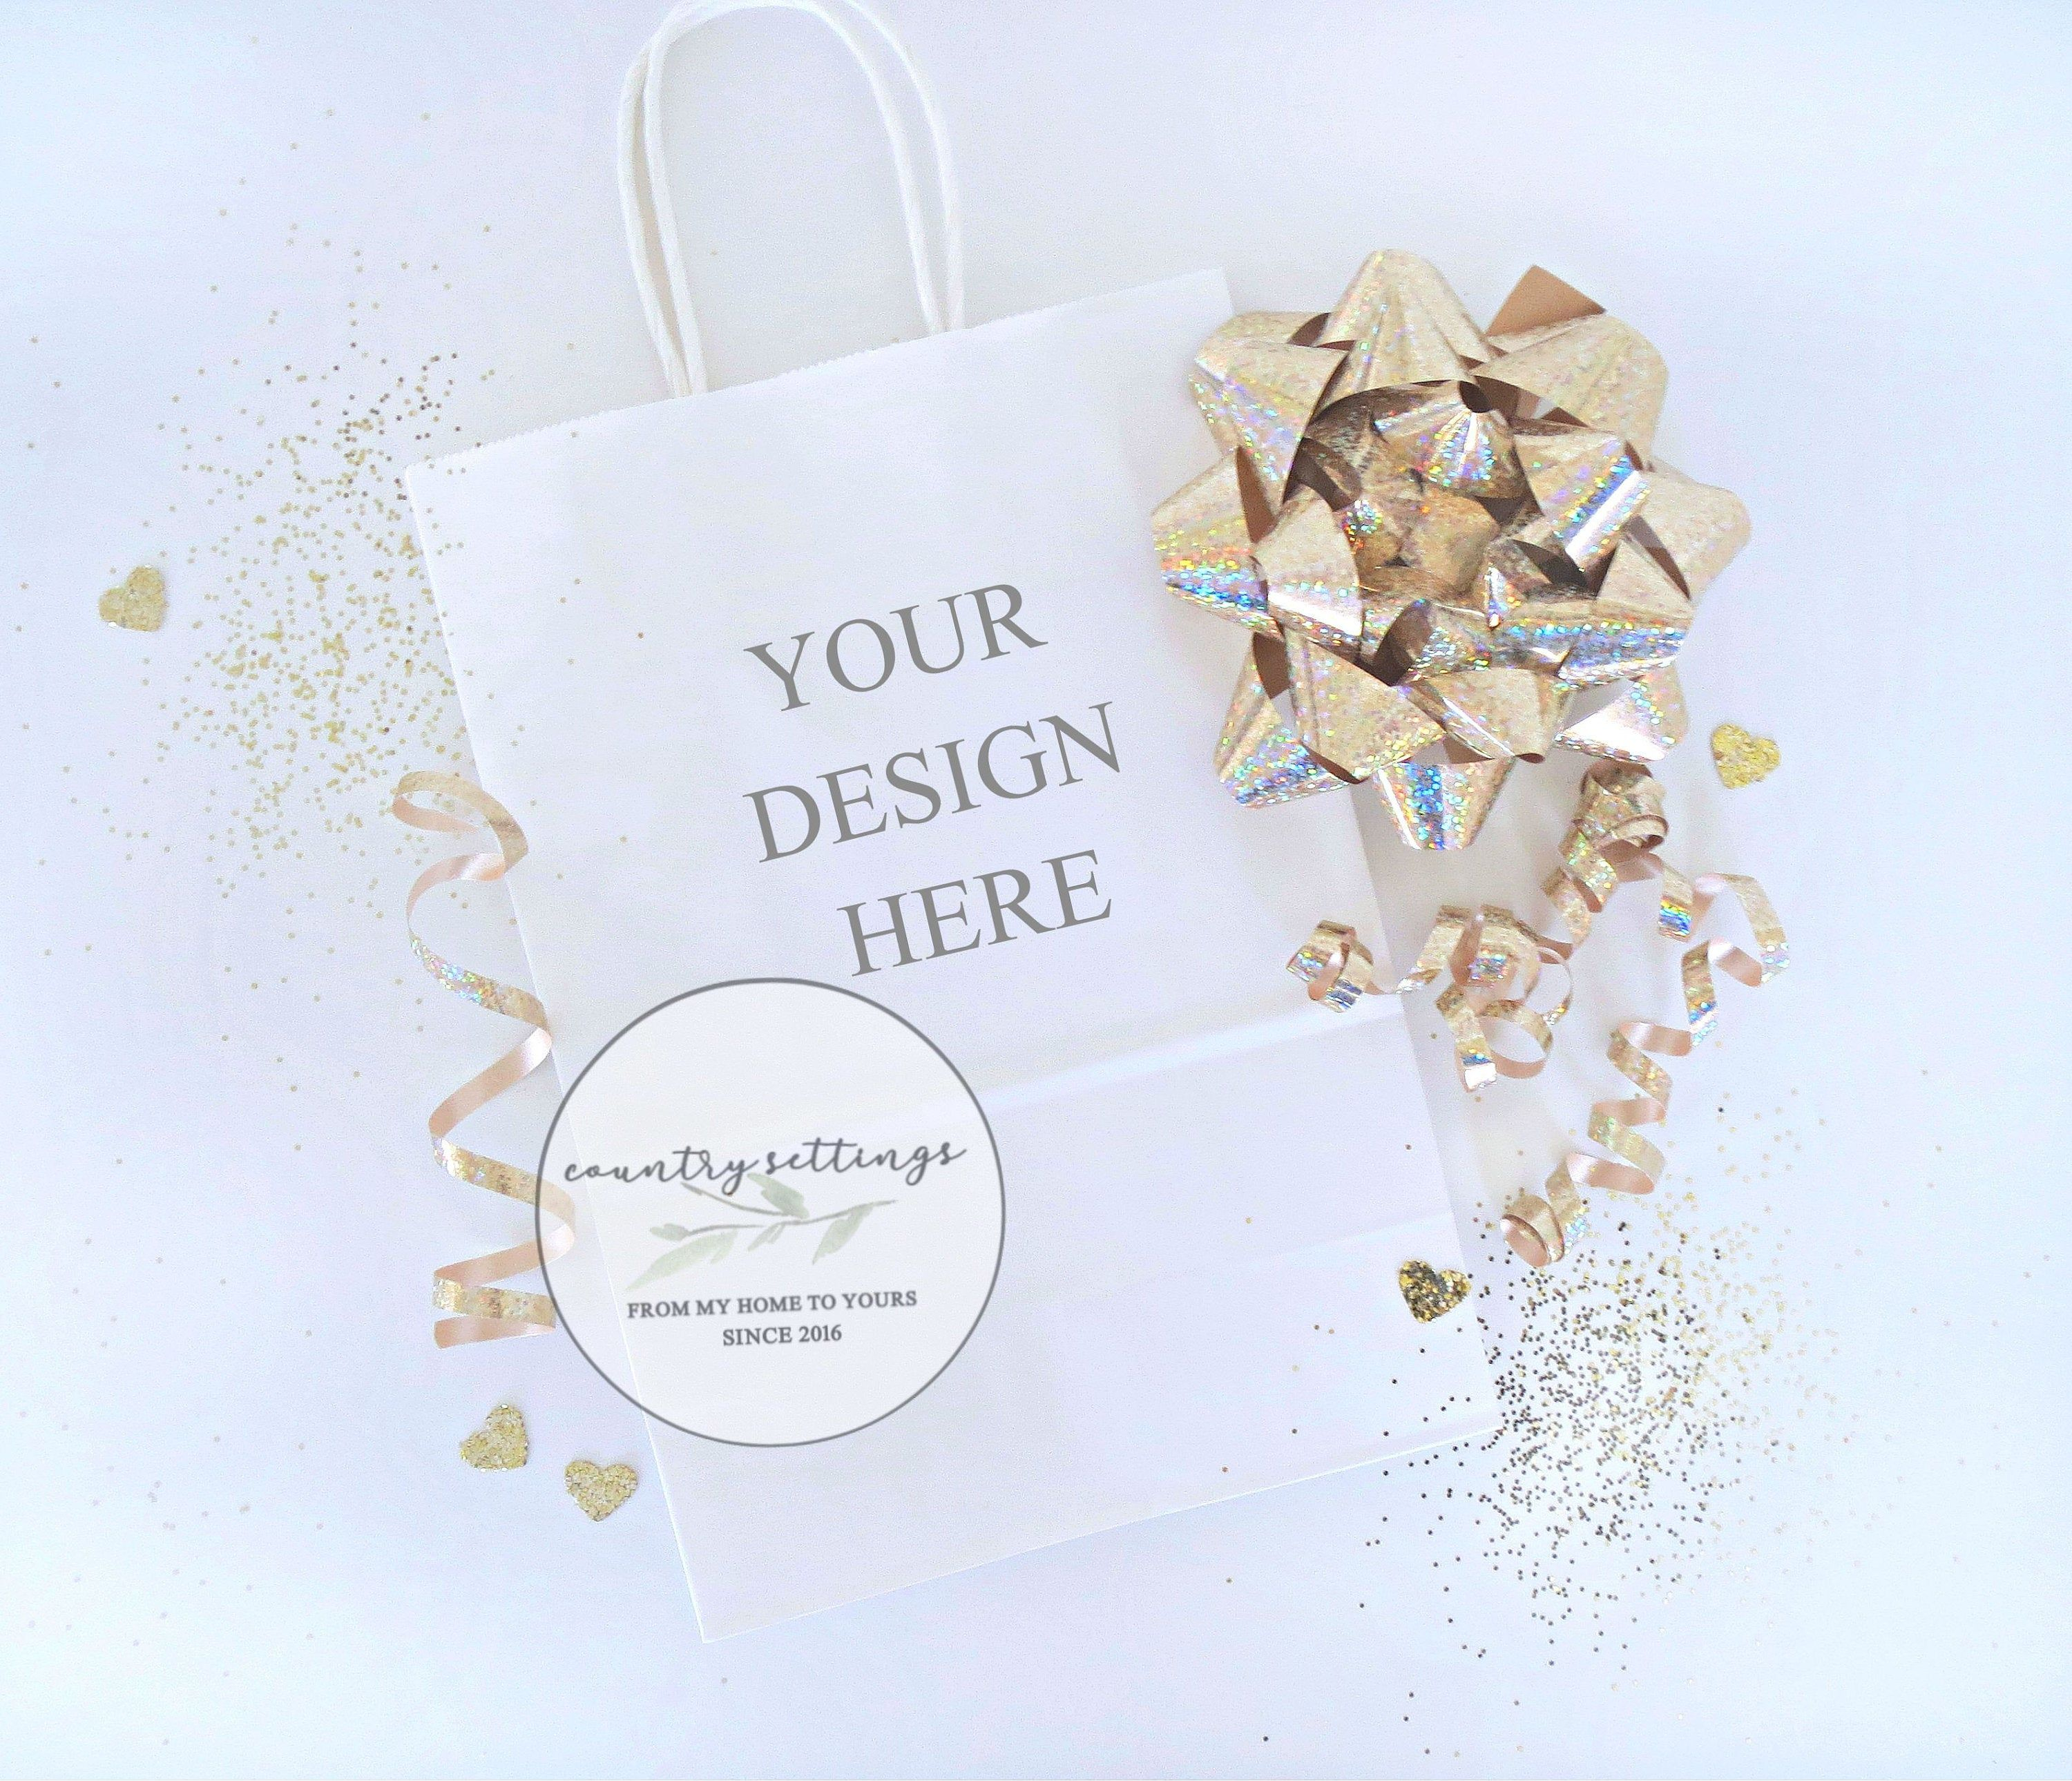 Download Blank Party Bag Mockup White Paper Gift Bag Mockup Styled Photography Mockups Paper Gifts Paper Gift Bags Bag Mockup